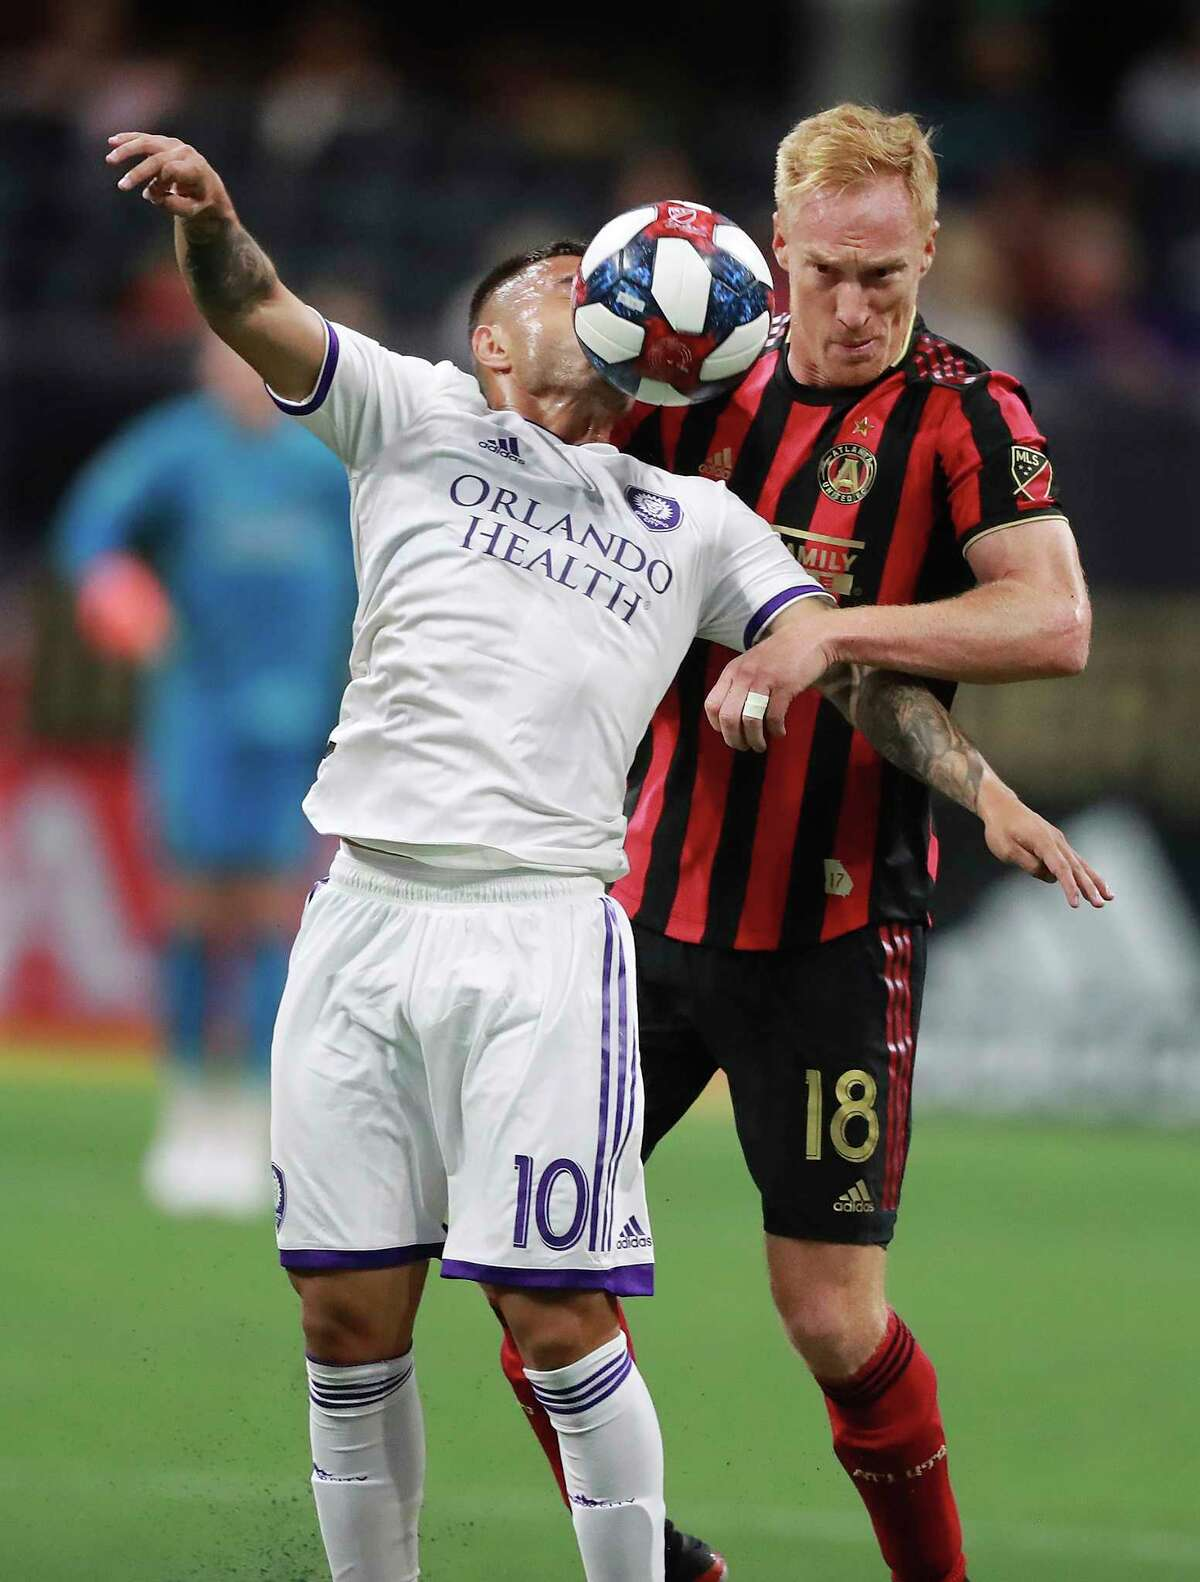 Atlanta United midfielder Jeff Larentowicz, who made his 400th MLS game played, battles Orlando City midfielder Josue Colman for the ball during the second half in a MLS soccer match on Sunday, May 12, 2019, in Atlanta. Atlanta United won the game 1-0. (Curtis Compton/Atlanta Journal-Constitution via AP)